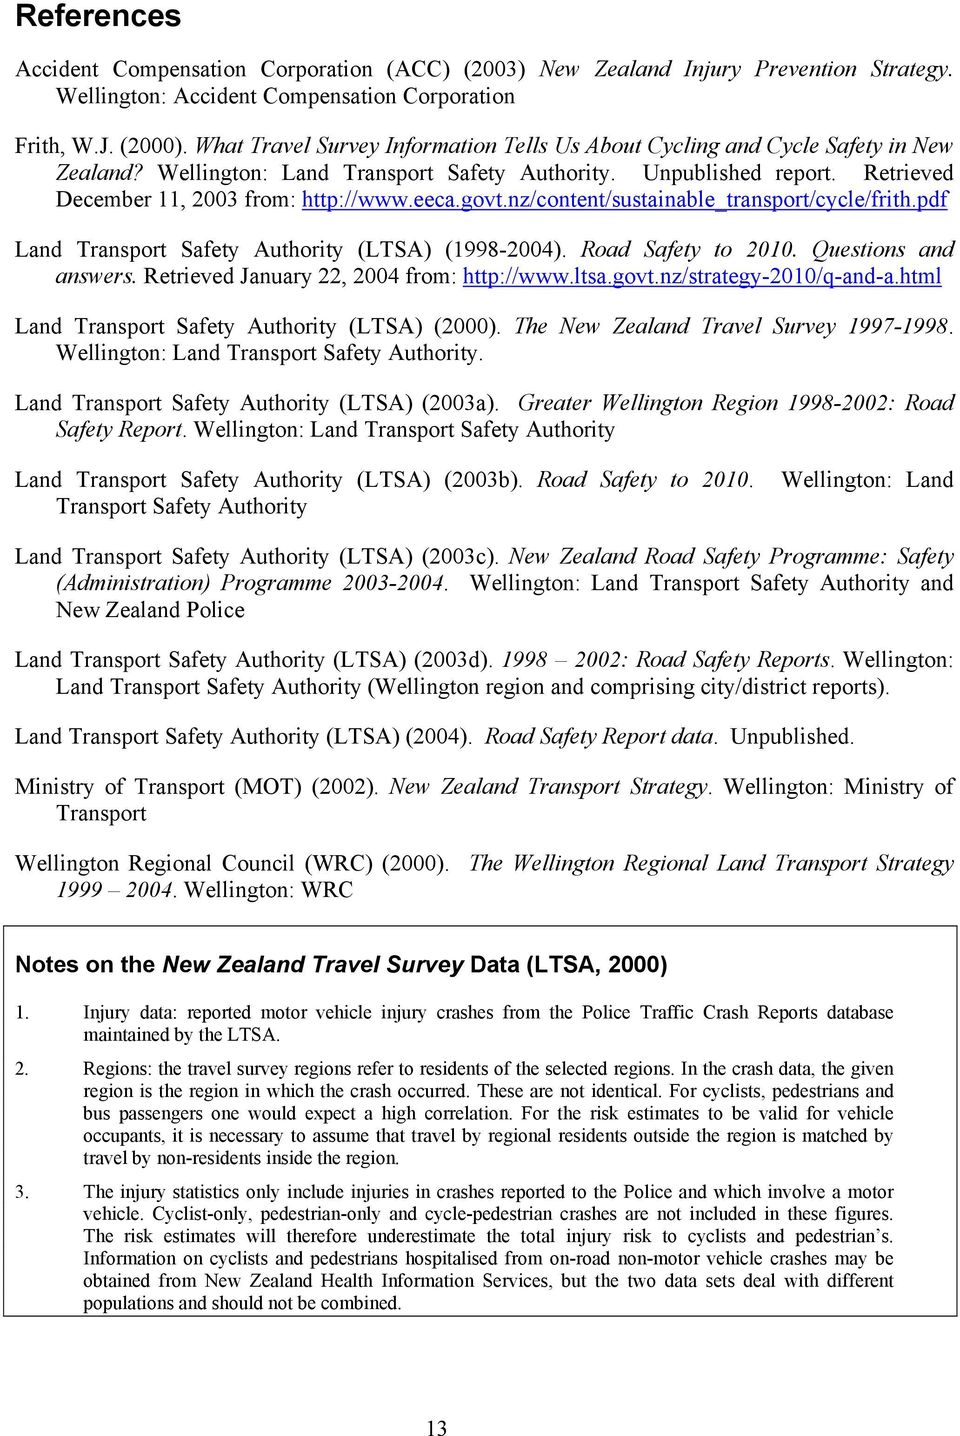 eeca.govt.nz/content/sustainable_transport/cycle/frith.pdf Land Transport Safety Authority (LTSA) (1998-2004). Road Safety to 2010. Questions and answers. Retrieved January 22, 2004 from: http://www.